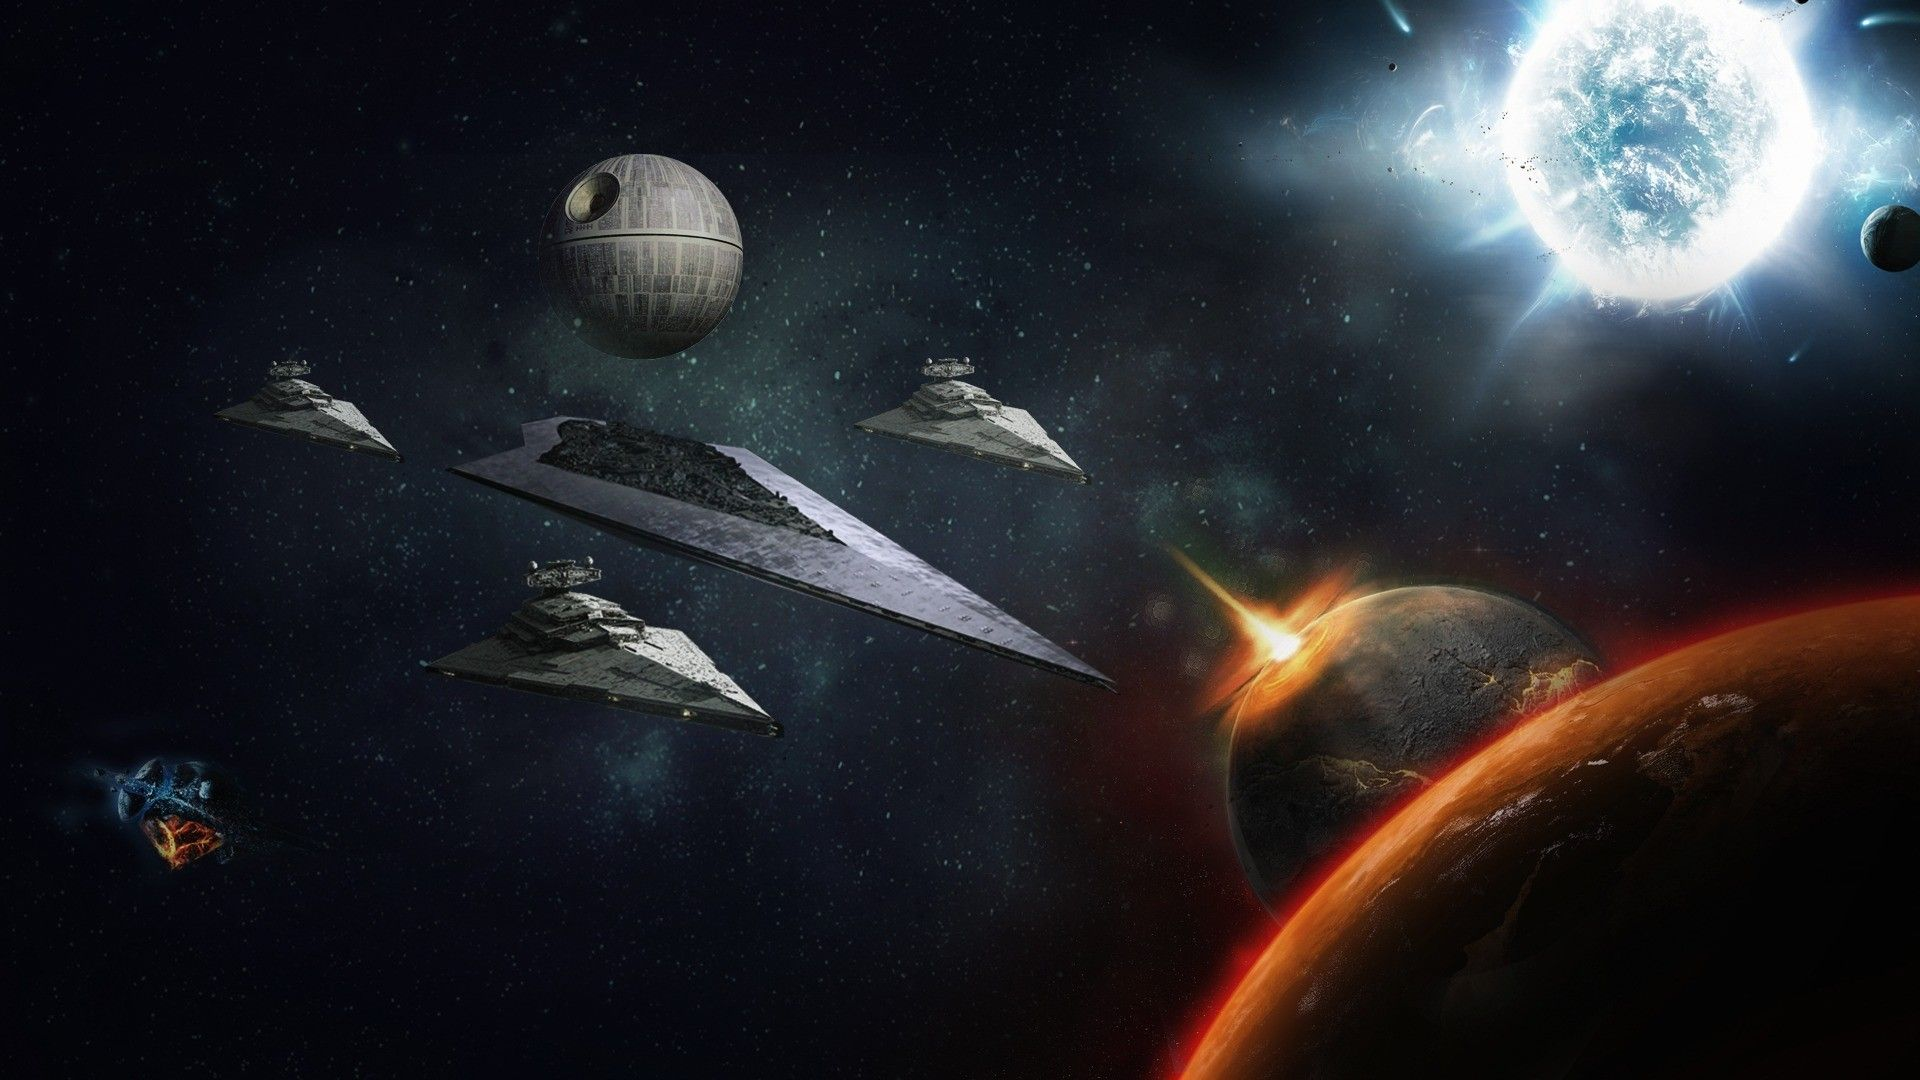 Star Wars Planet Wallpapers Top Free Star Wars Planet